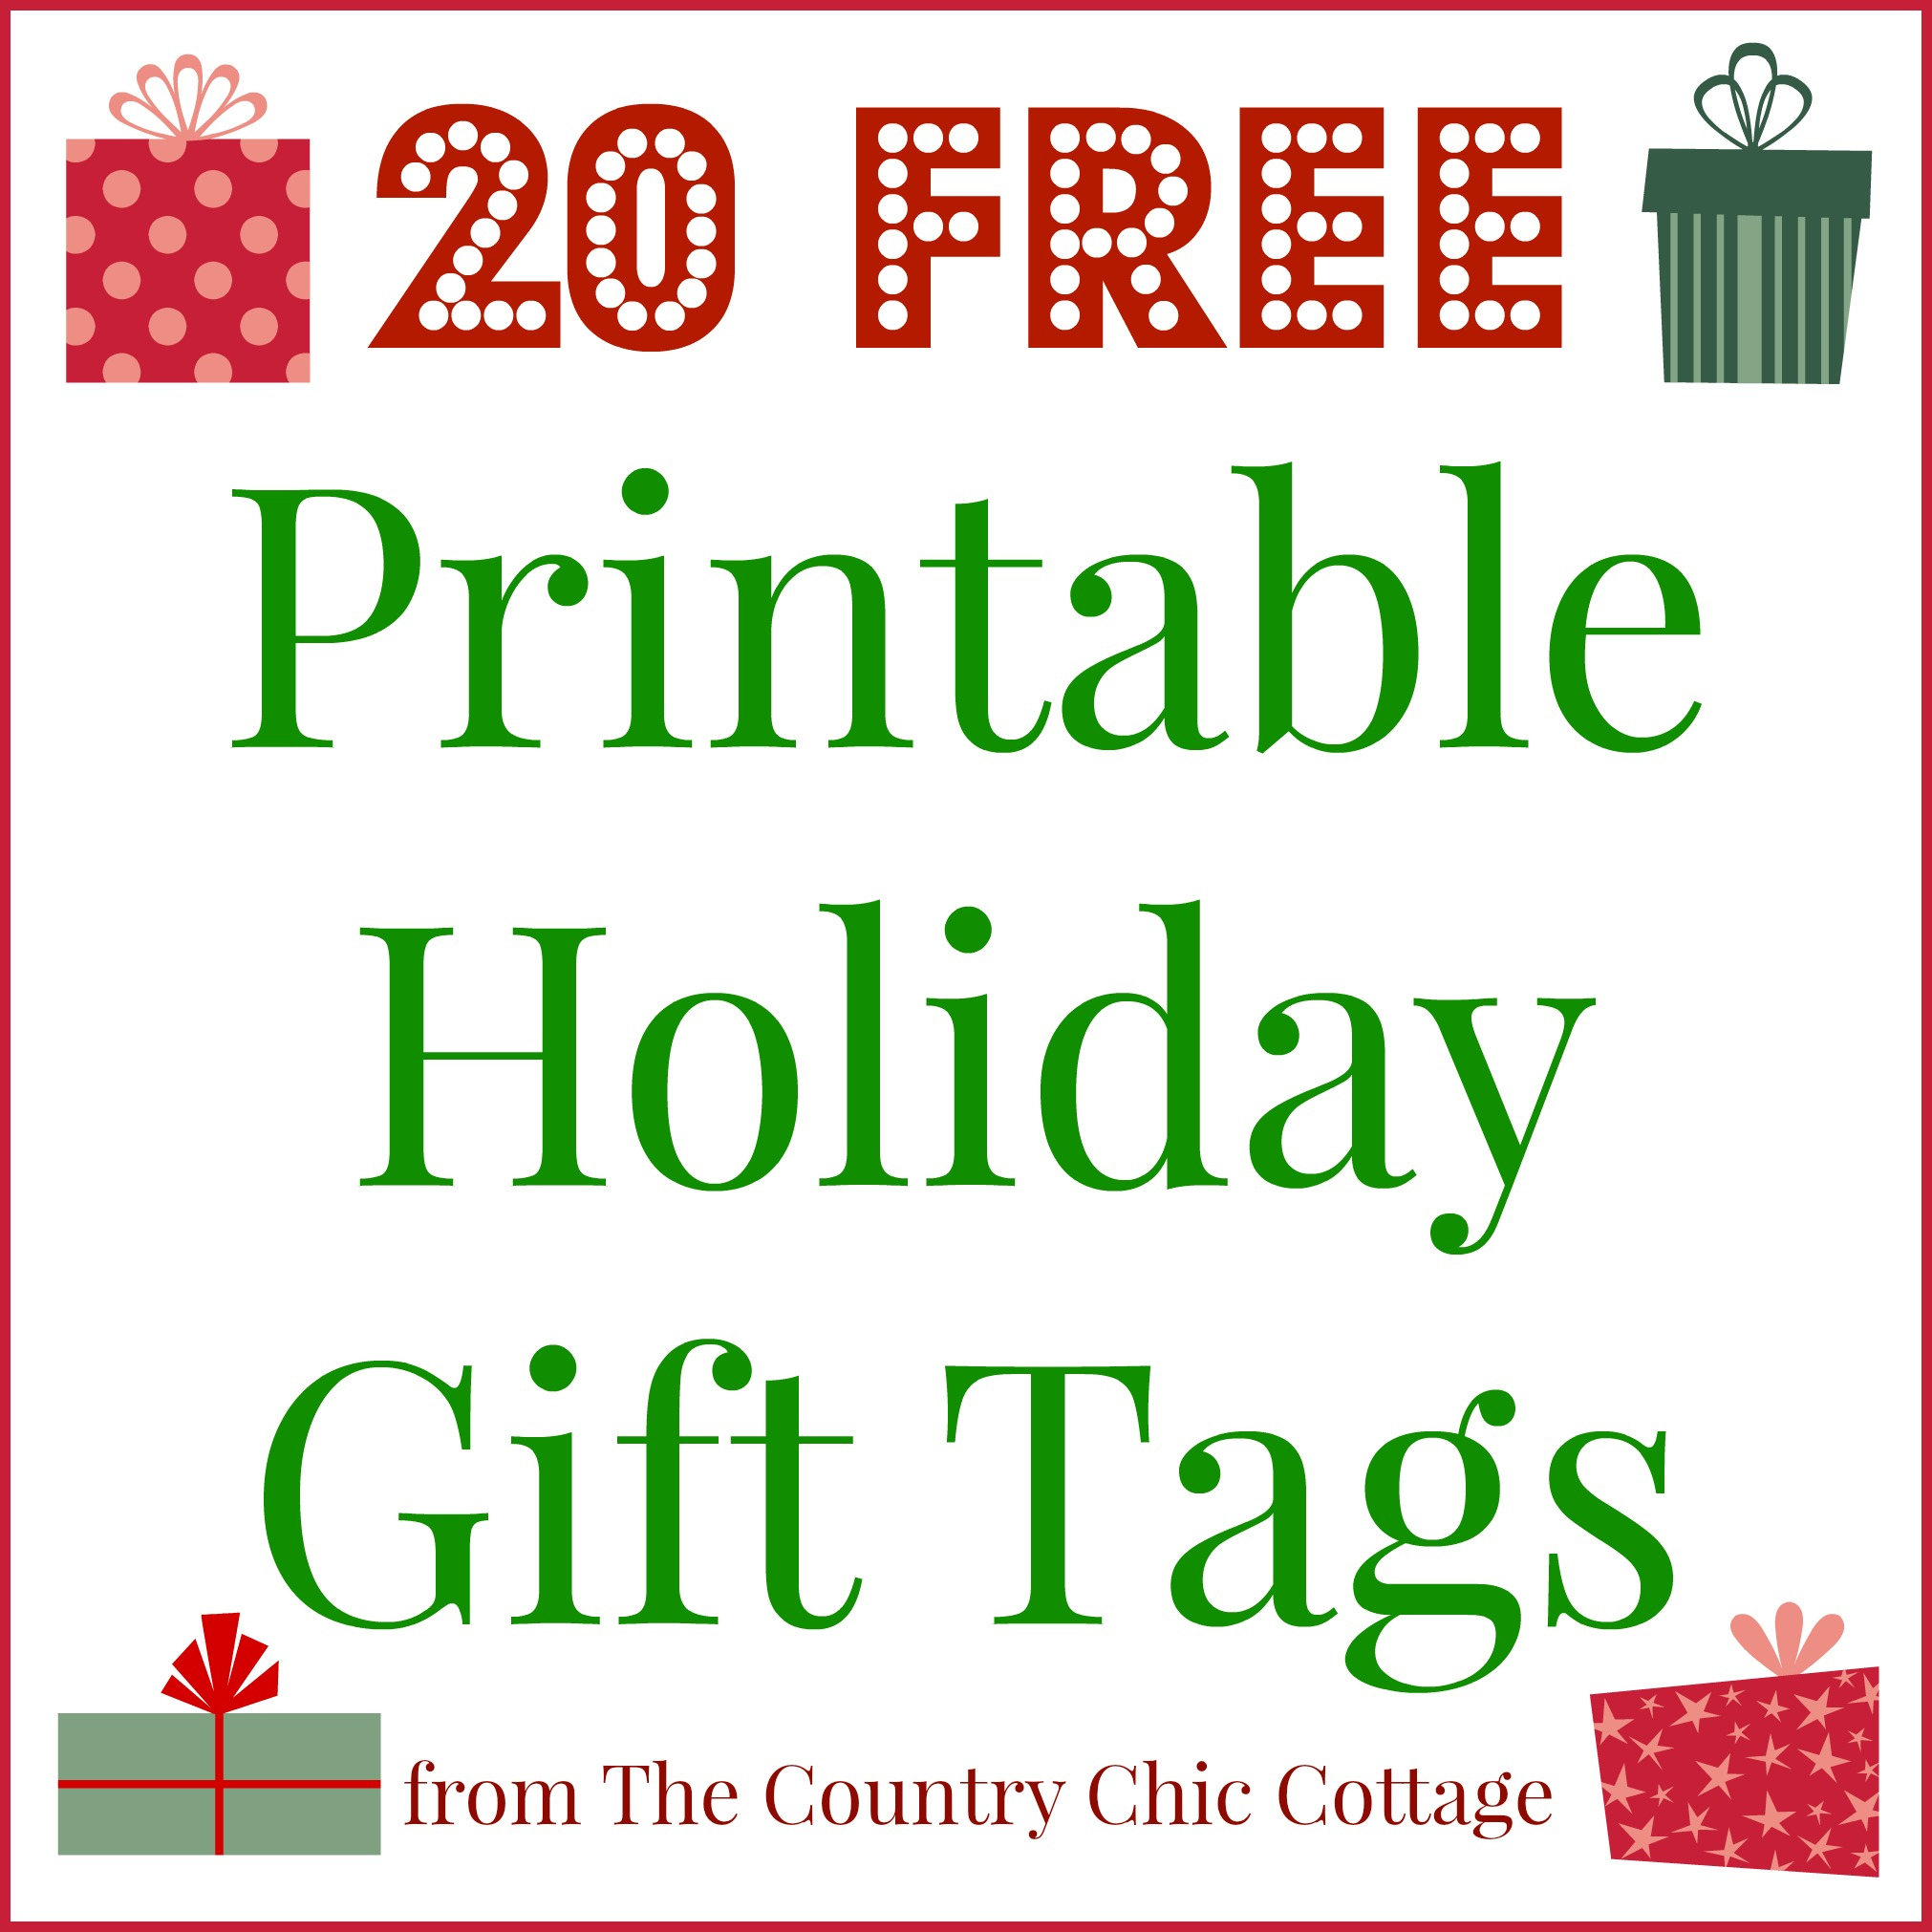 20 Printable Holiday Gift Tags (For Free!!) - The Country Chic Cottage - Free Printable Customizable Gift Tags